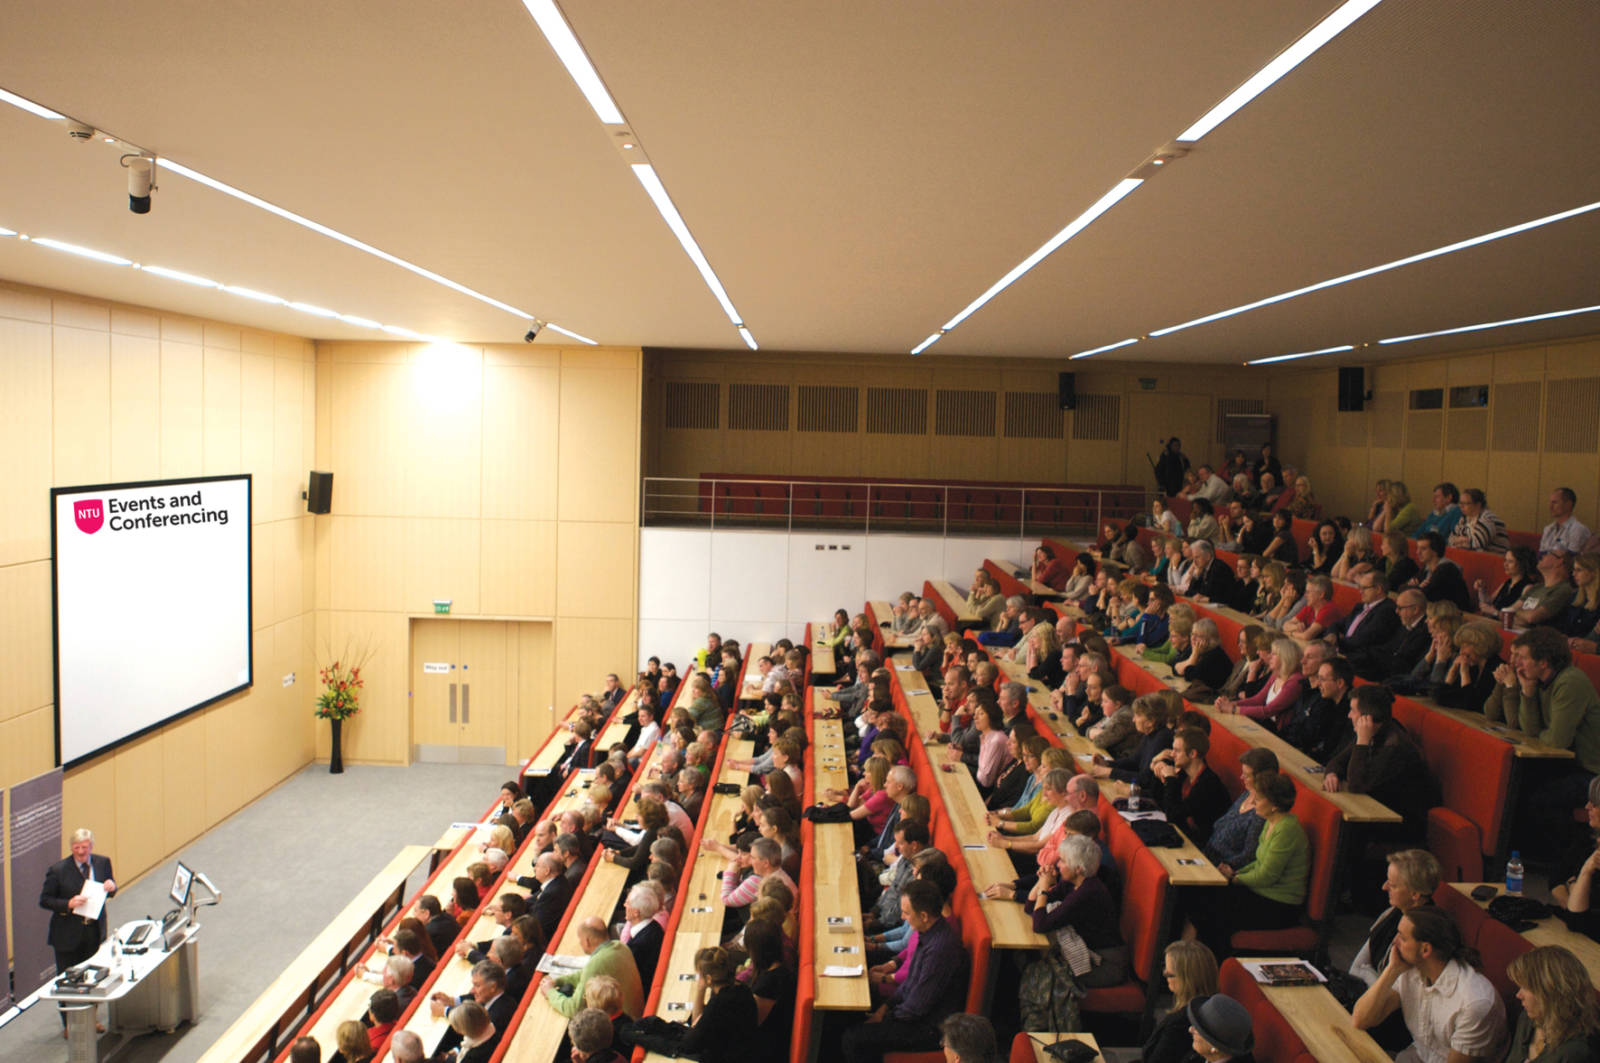 Nottingham Conference Centre rebrands as NTU Events and Conferencing